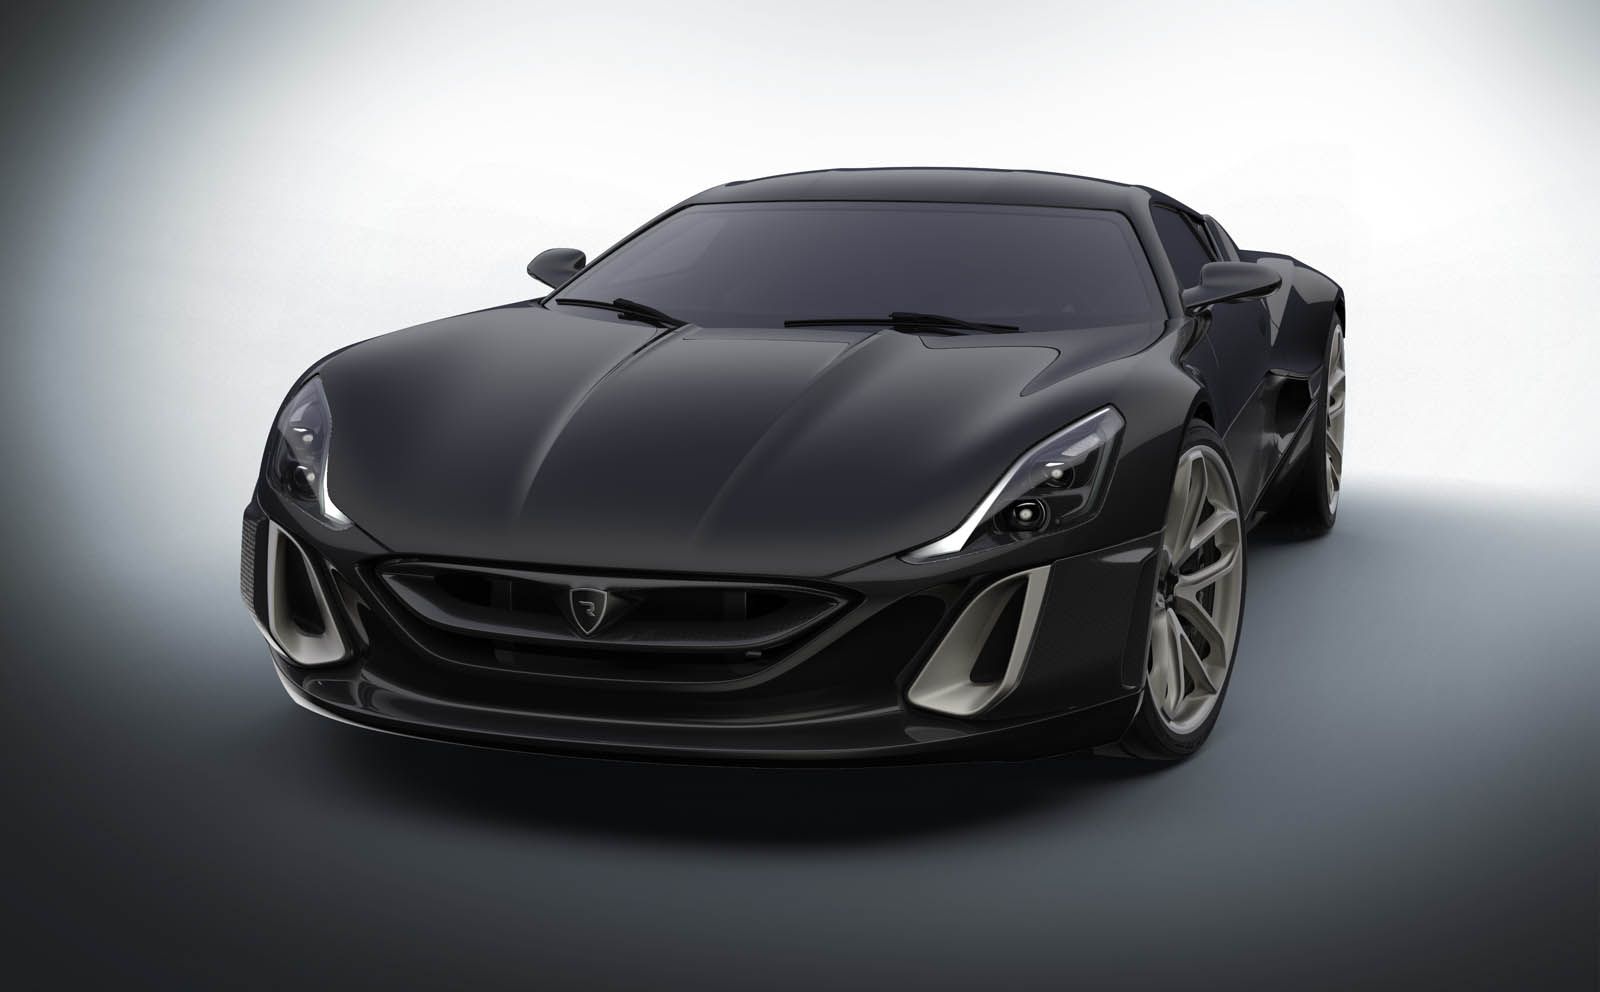 Rimac Concept_One in Geneva 2017 (6)